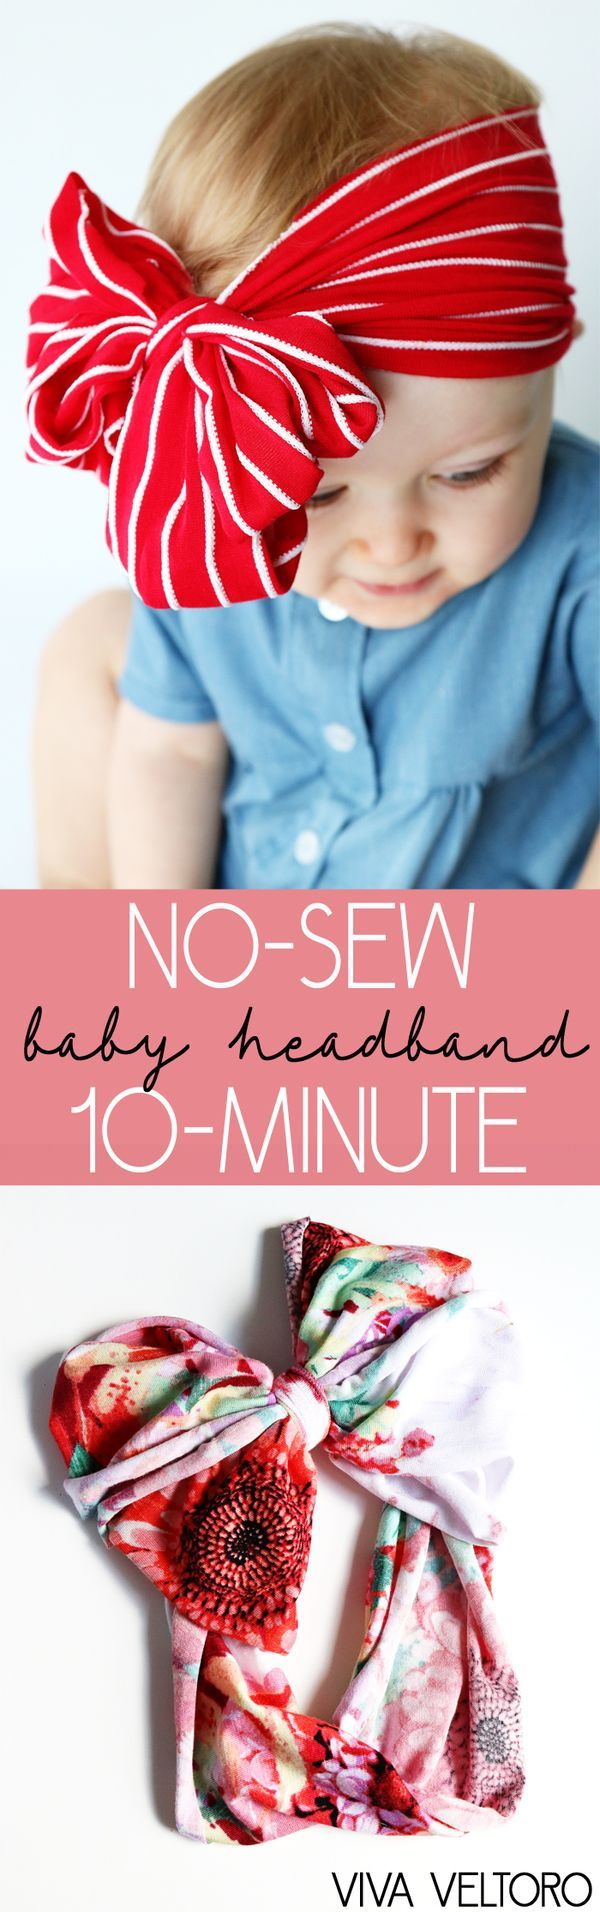 How to Make Baby Headbands Without Sewing | Kinder klamotten ...